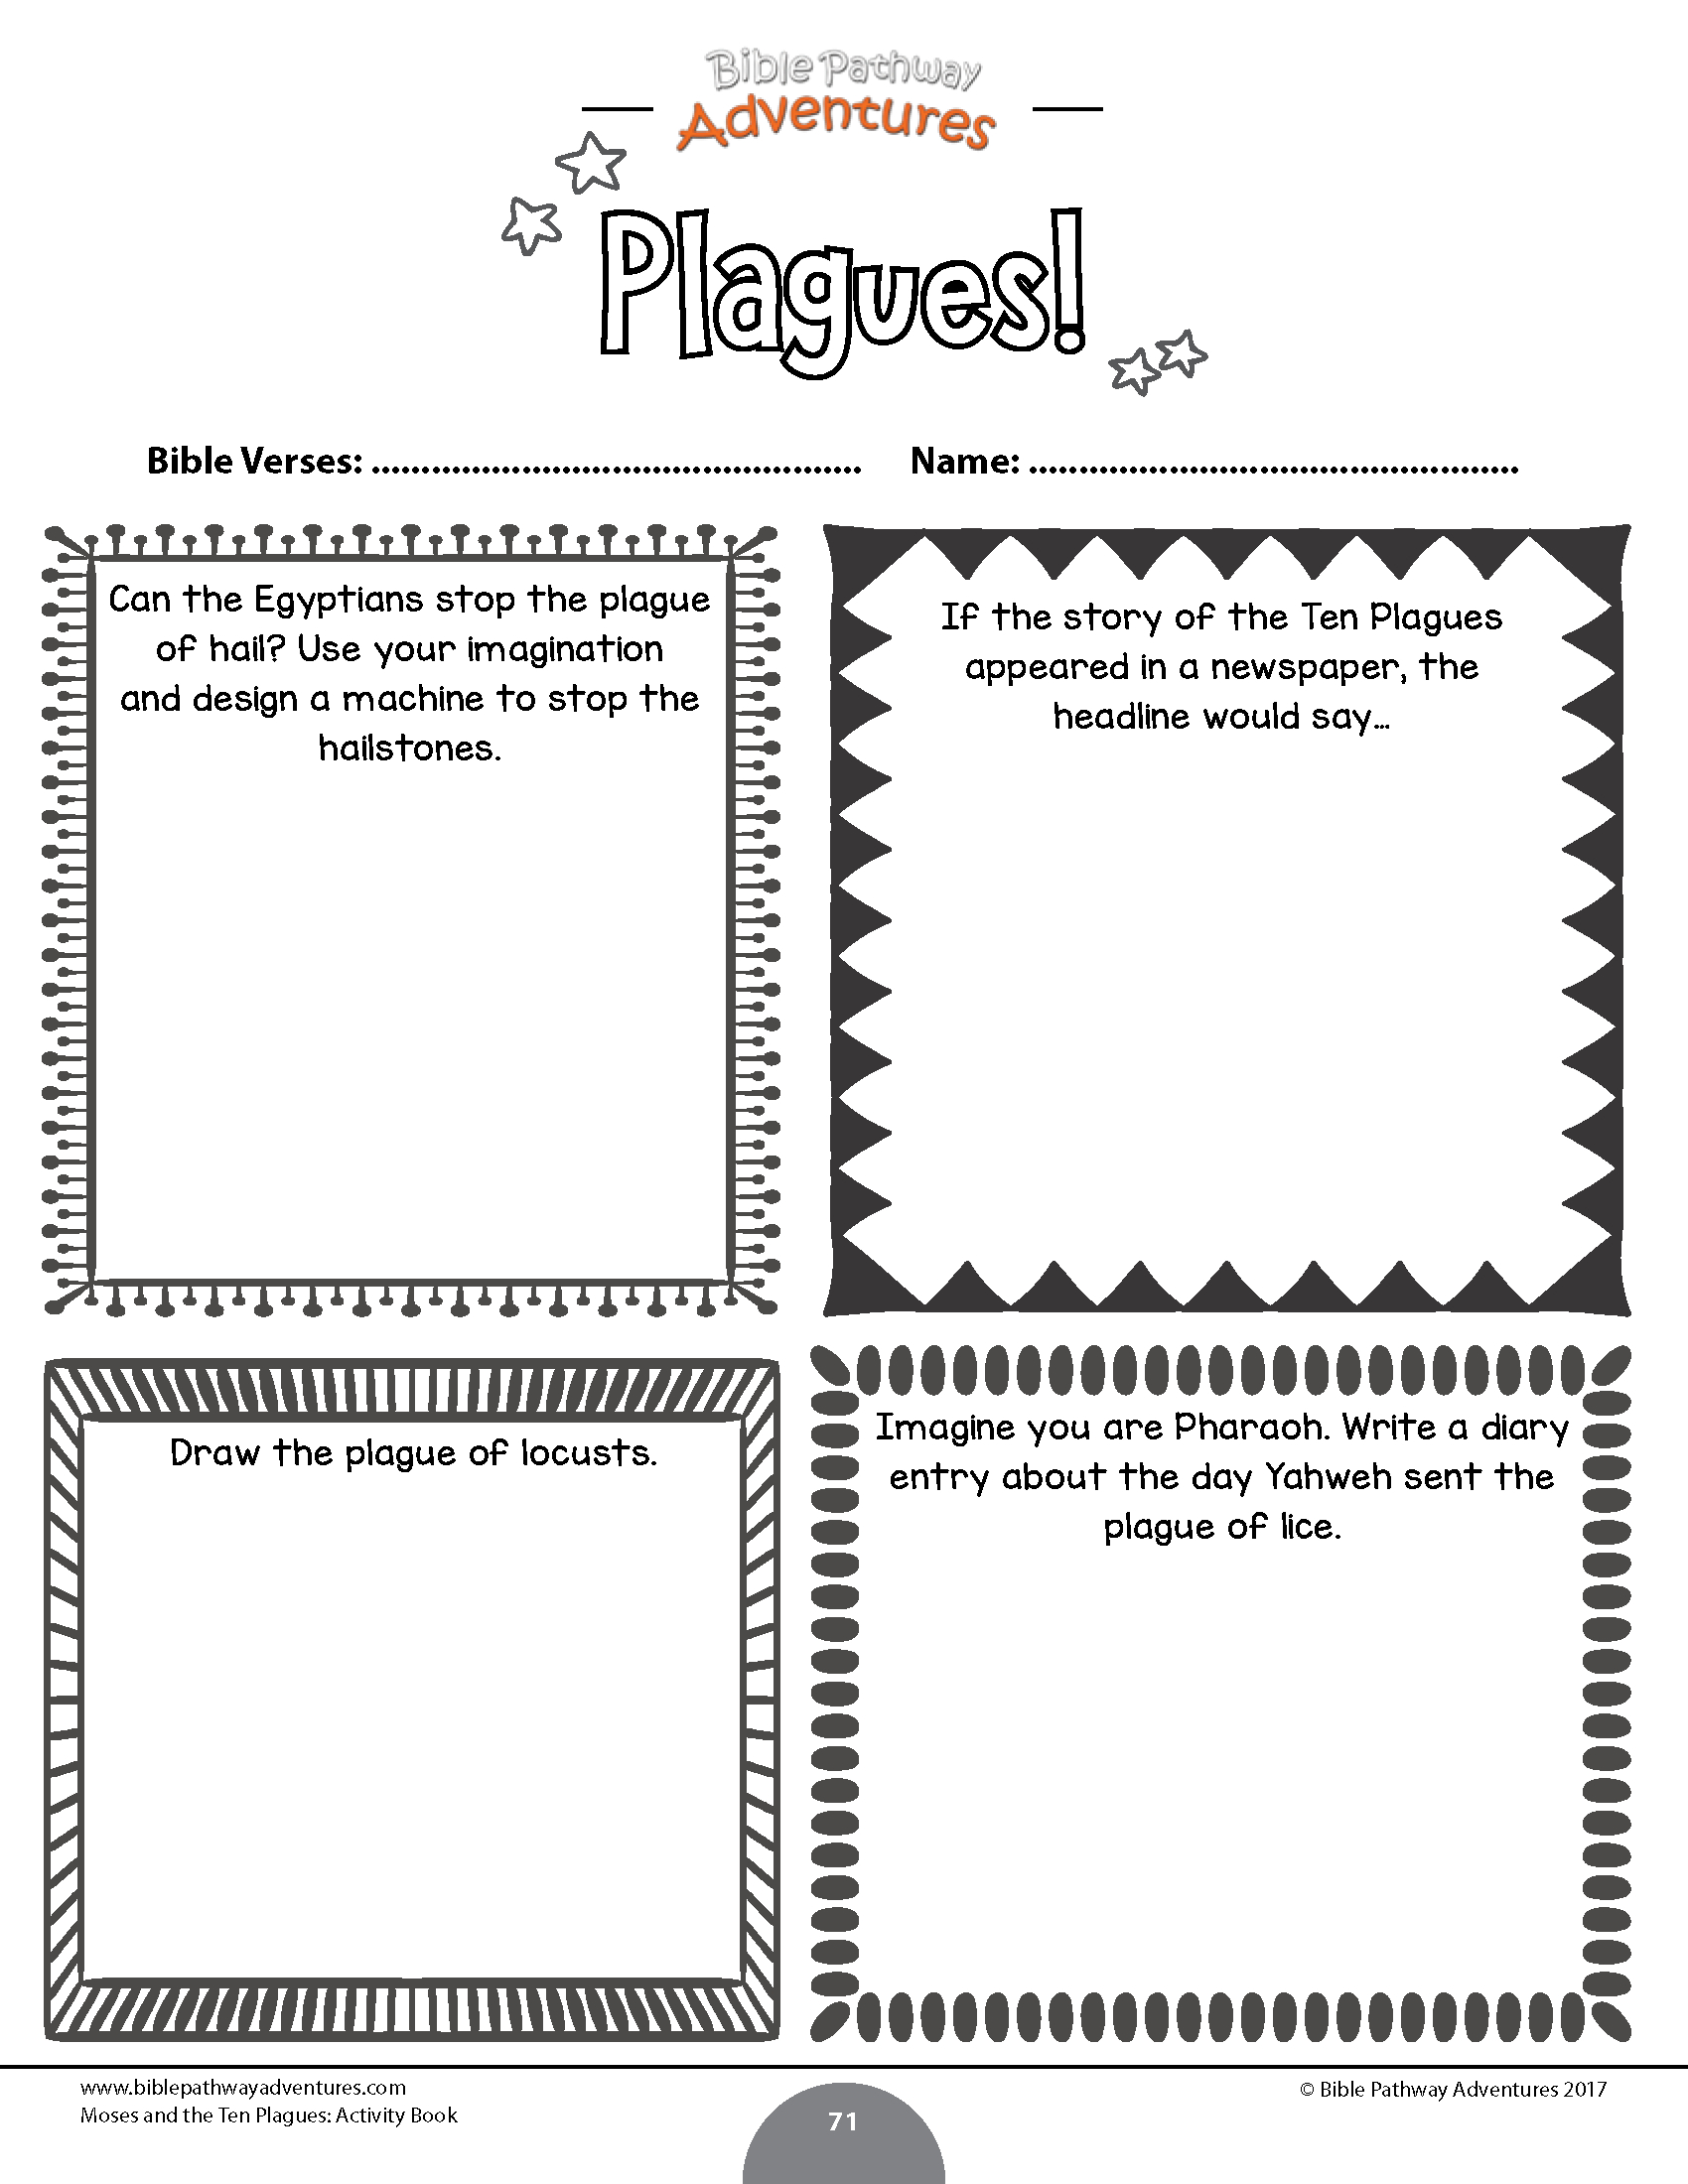 Bundle: The Passover Story – Bible Pathway Adventures - Printable Bible Crossword Puzzles With Scripture References